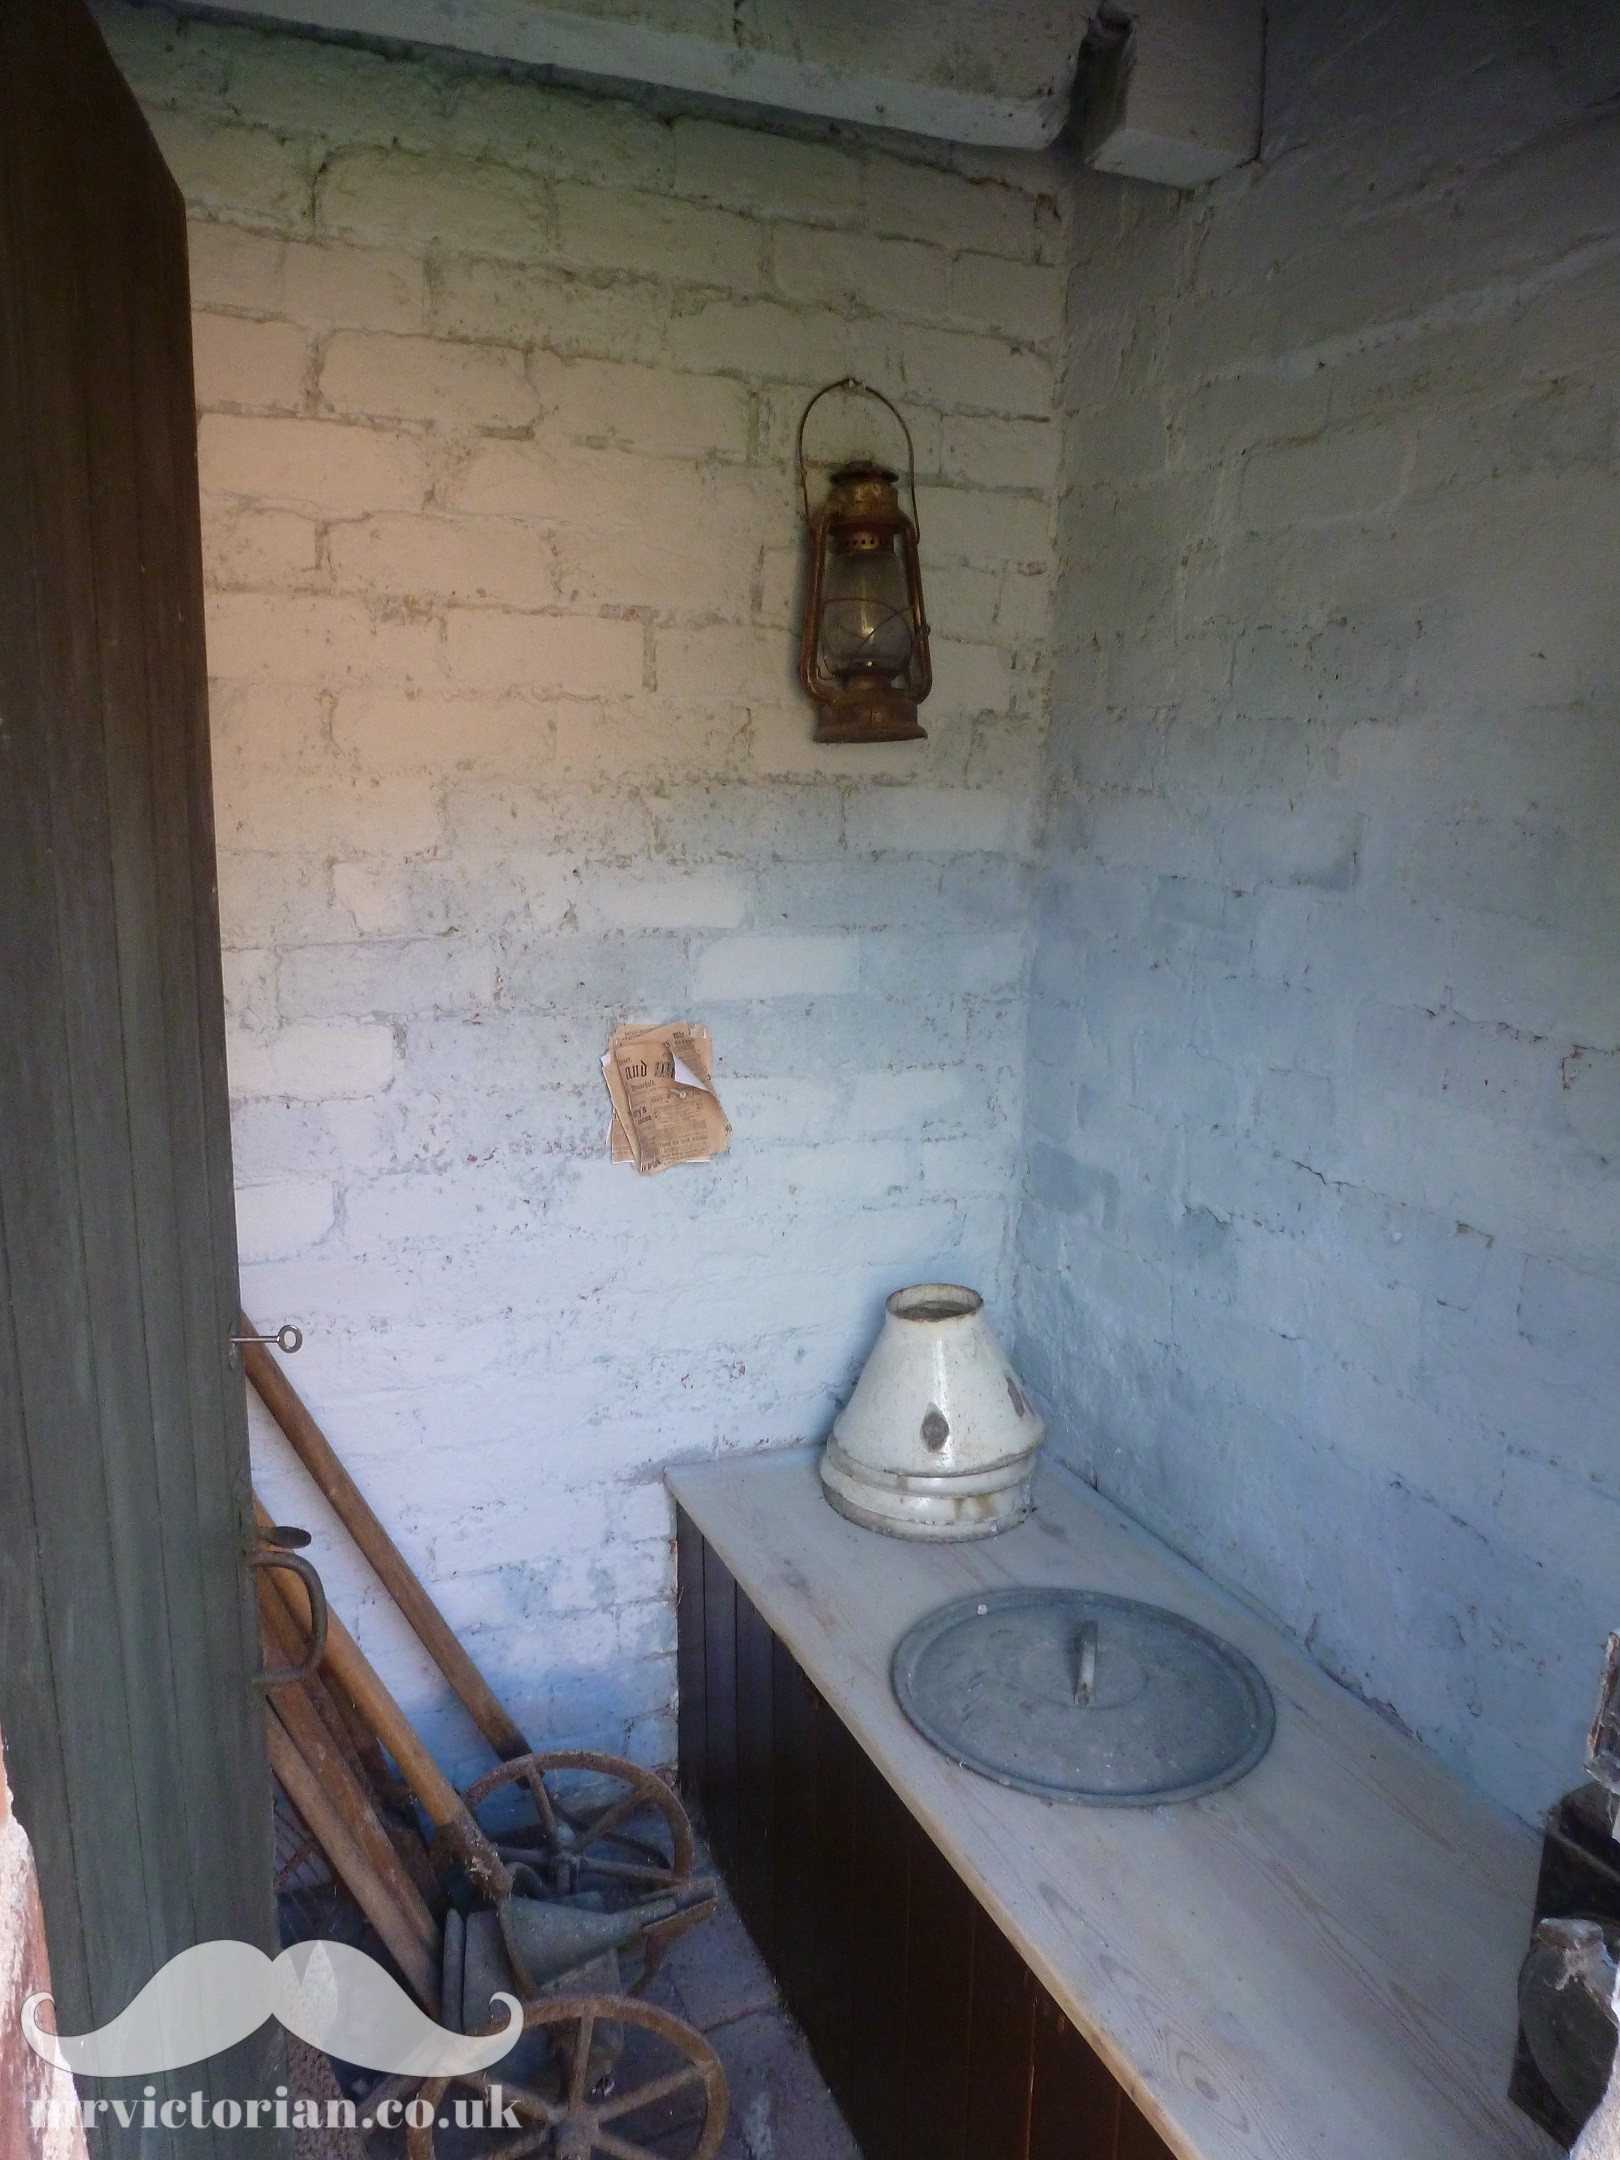 Victorian house tour distempered privy or outside toilet. Visit www.mrvictorian.co.uk